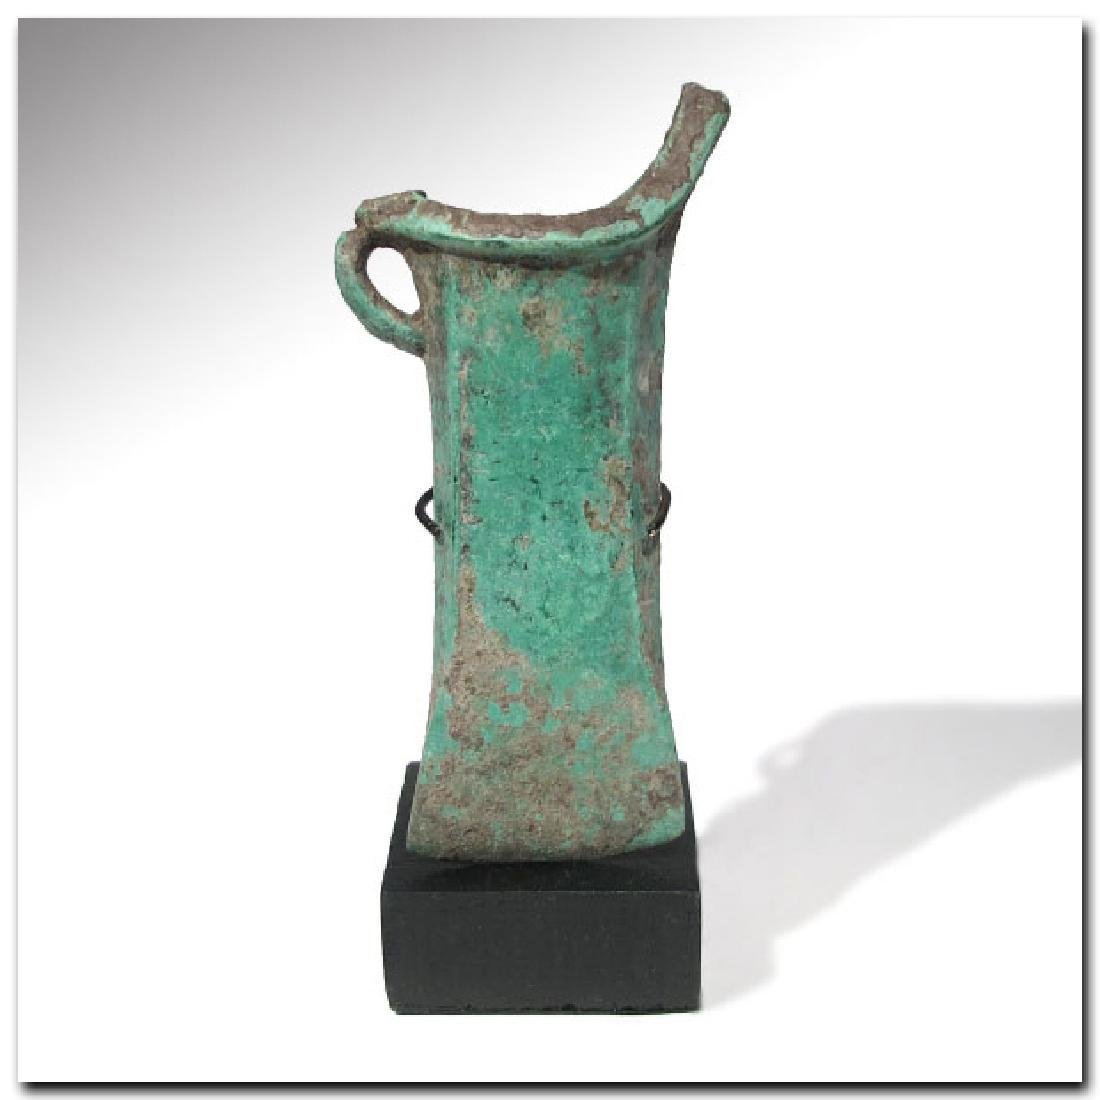 Bronze Age Axe Head, North European, c. 900-800 B.C.